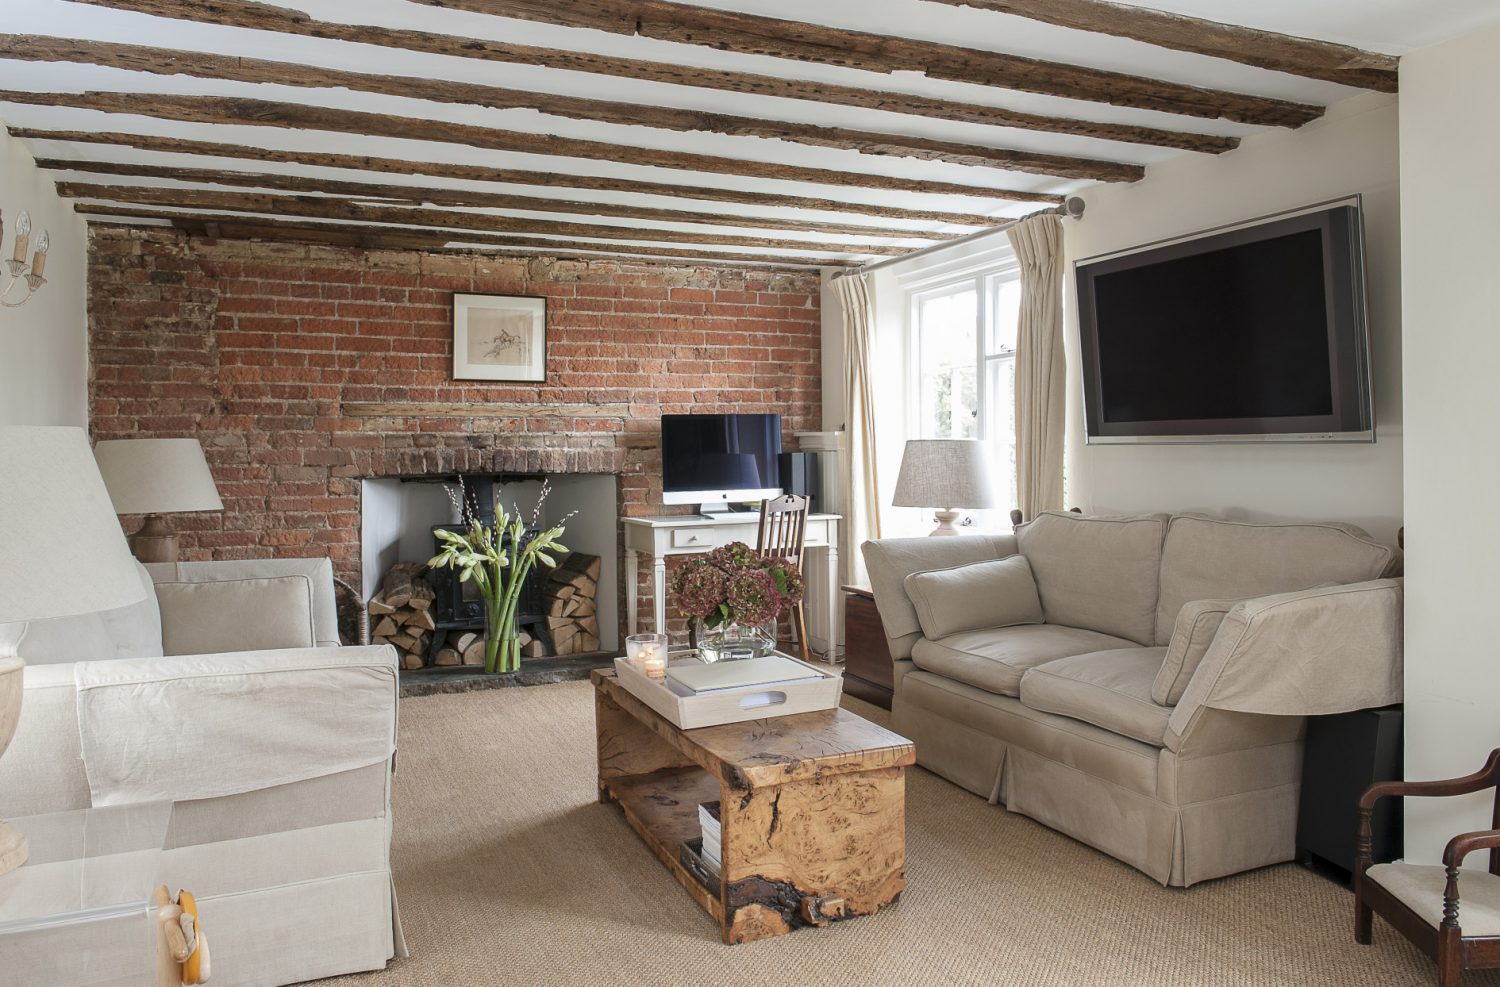 Holly and Chris kept the fireplace wall as bare brickwork and exposed the original beams